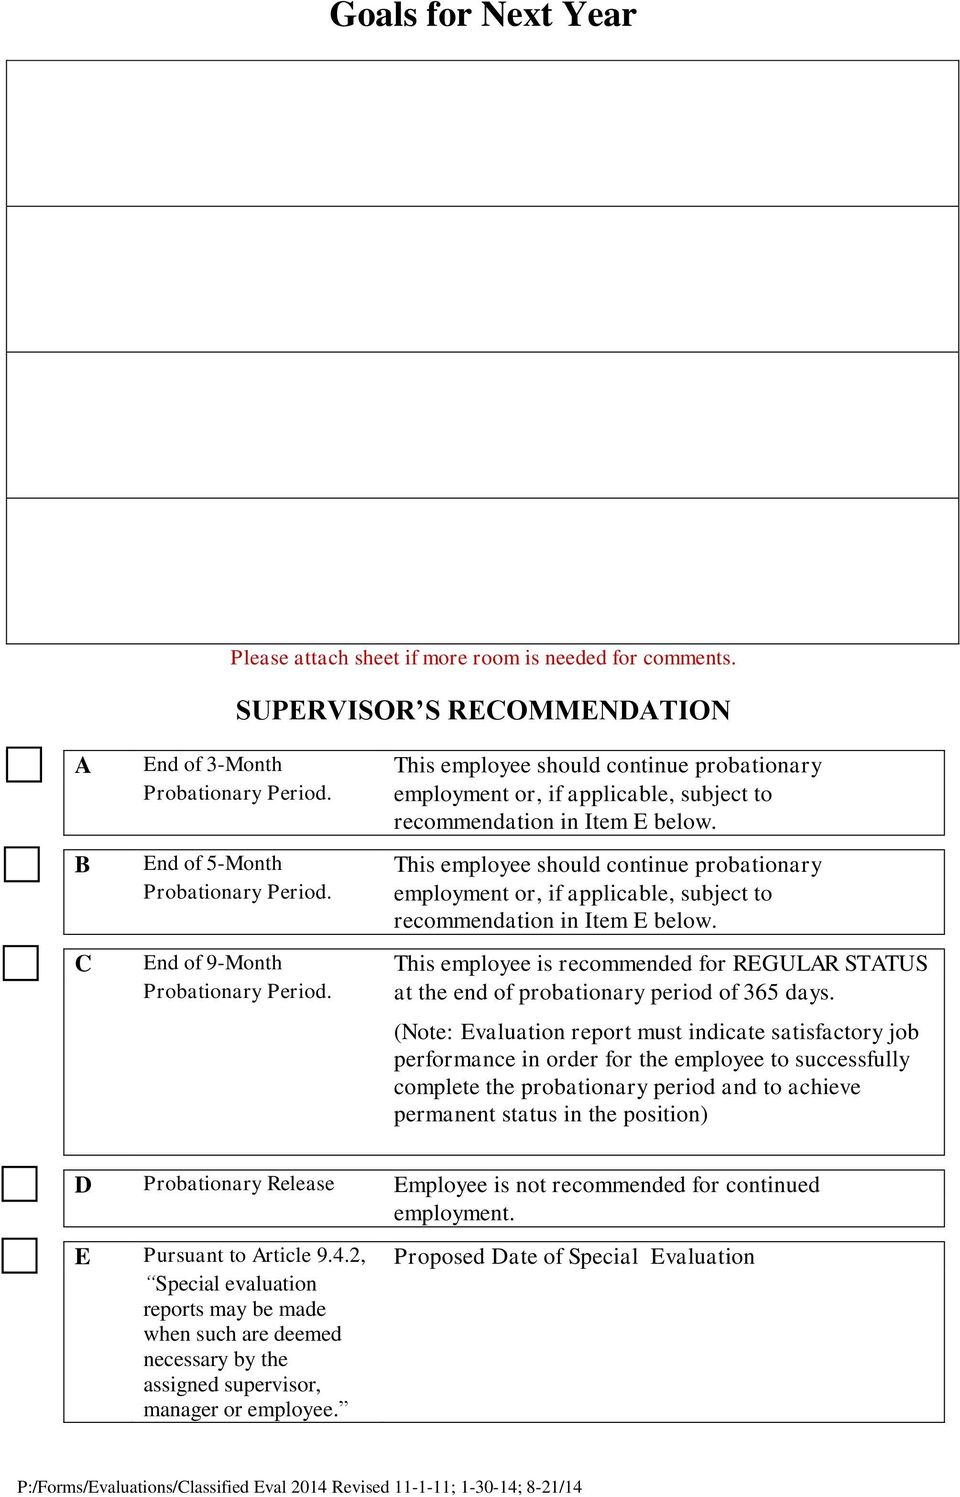 employment or, if applicable, subject to recommendation in Item E below. C End of 9-Month This employee is recommended for REGULAR STATUS Probationary Period.